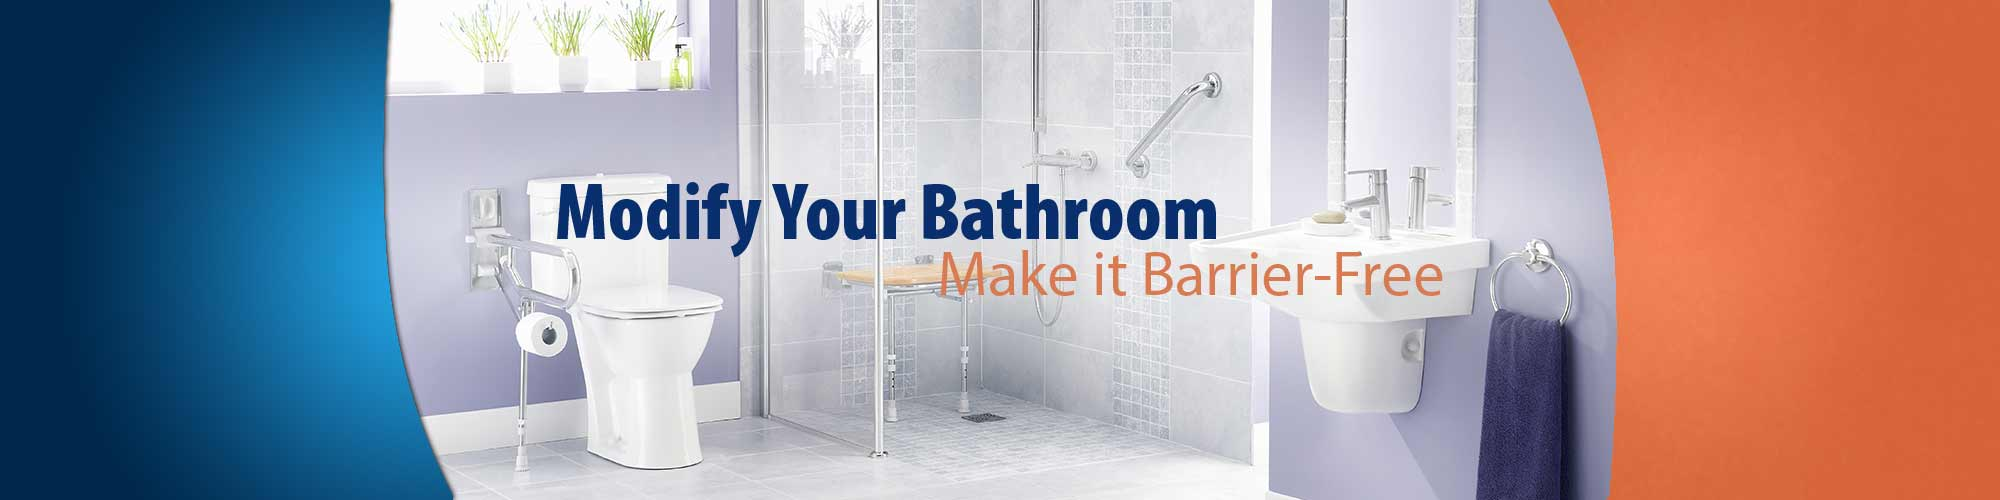 Modify Your Bathroom with Back Home Safely